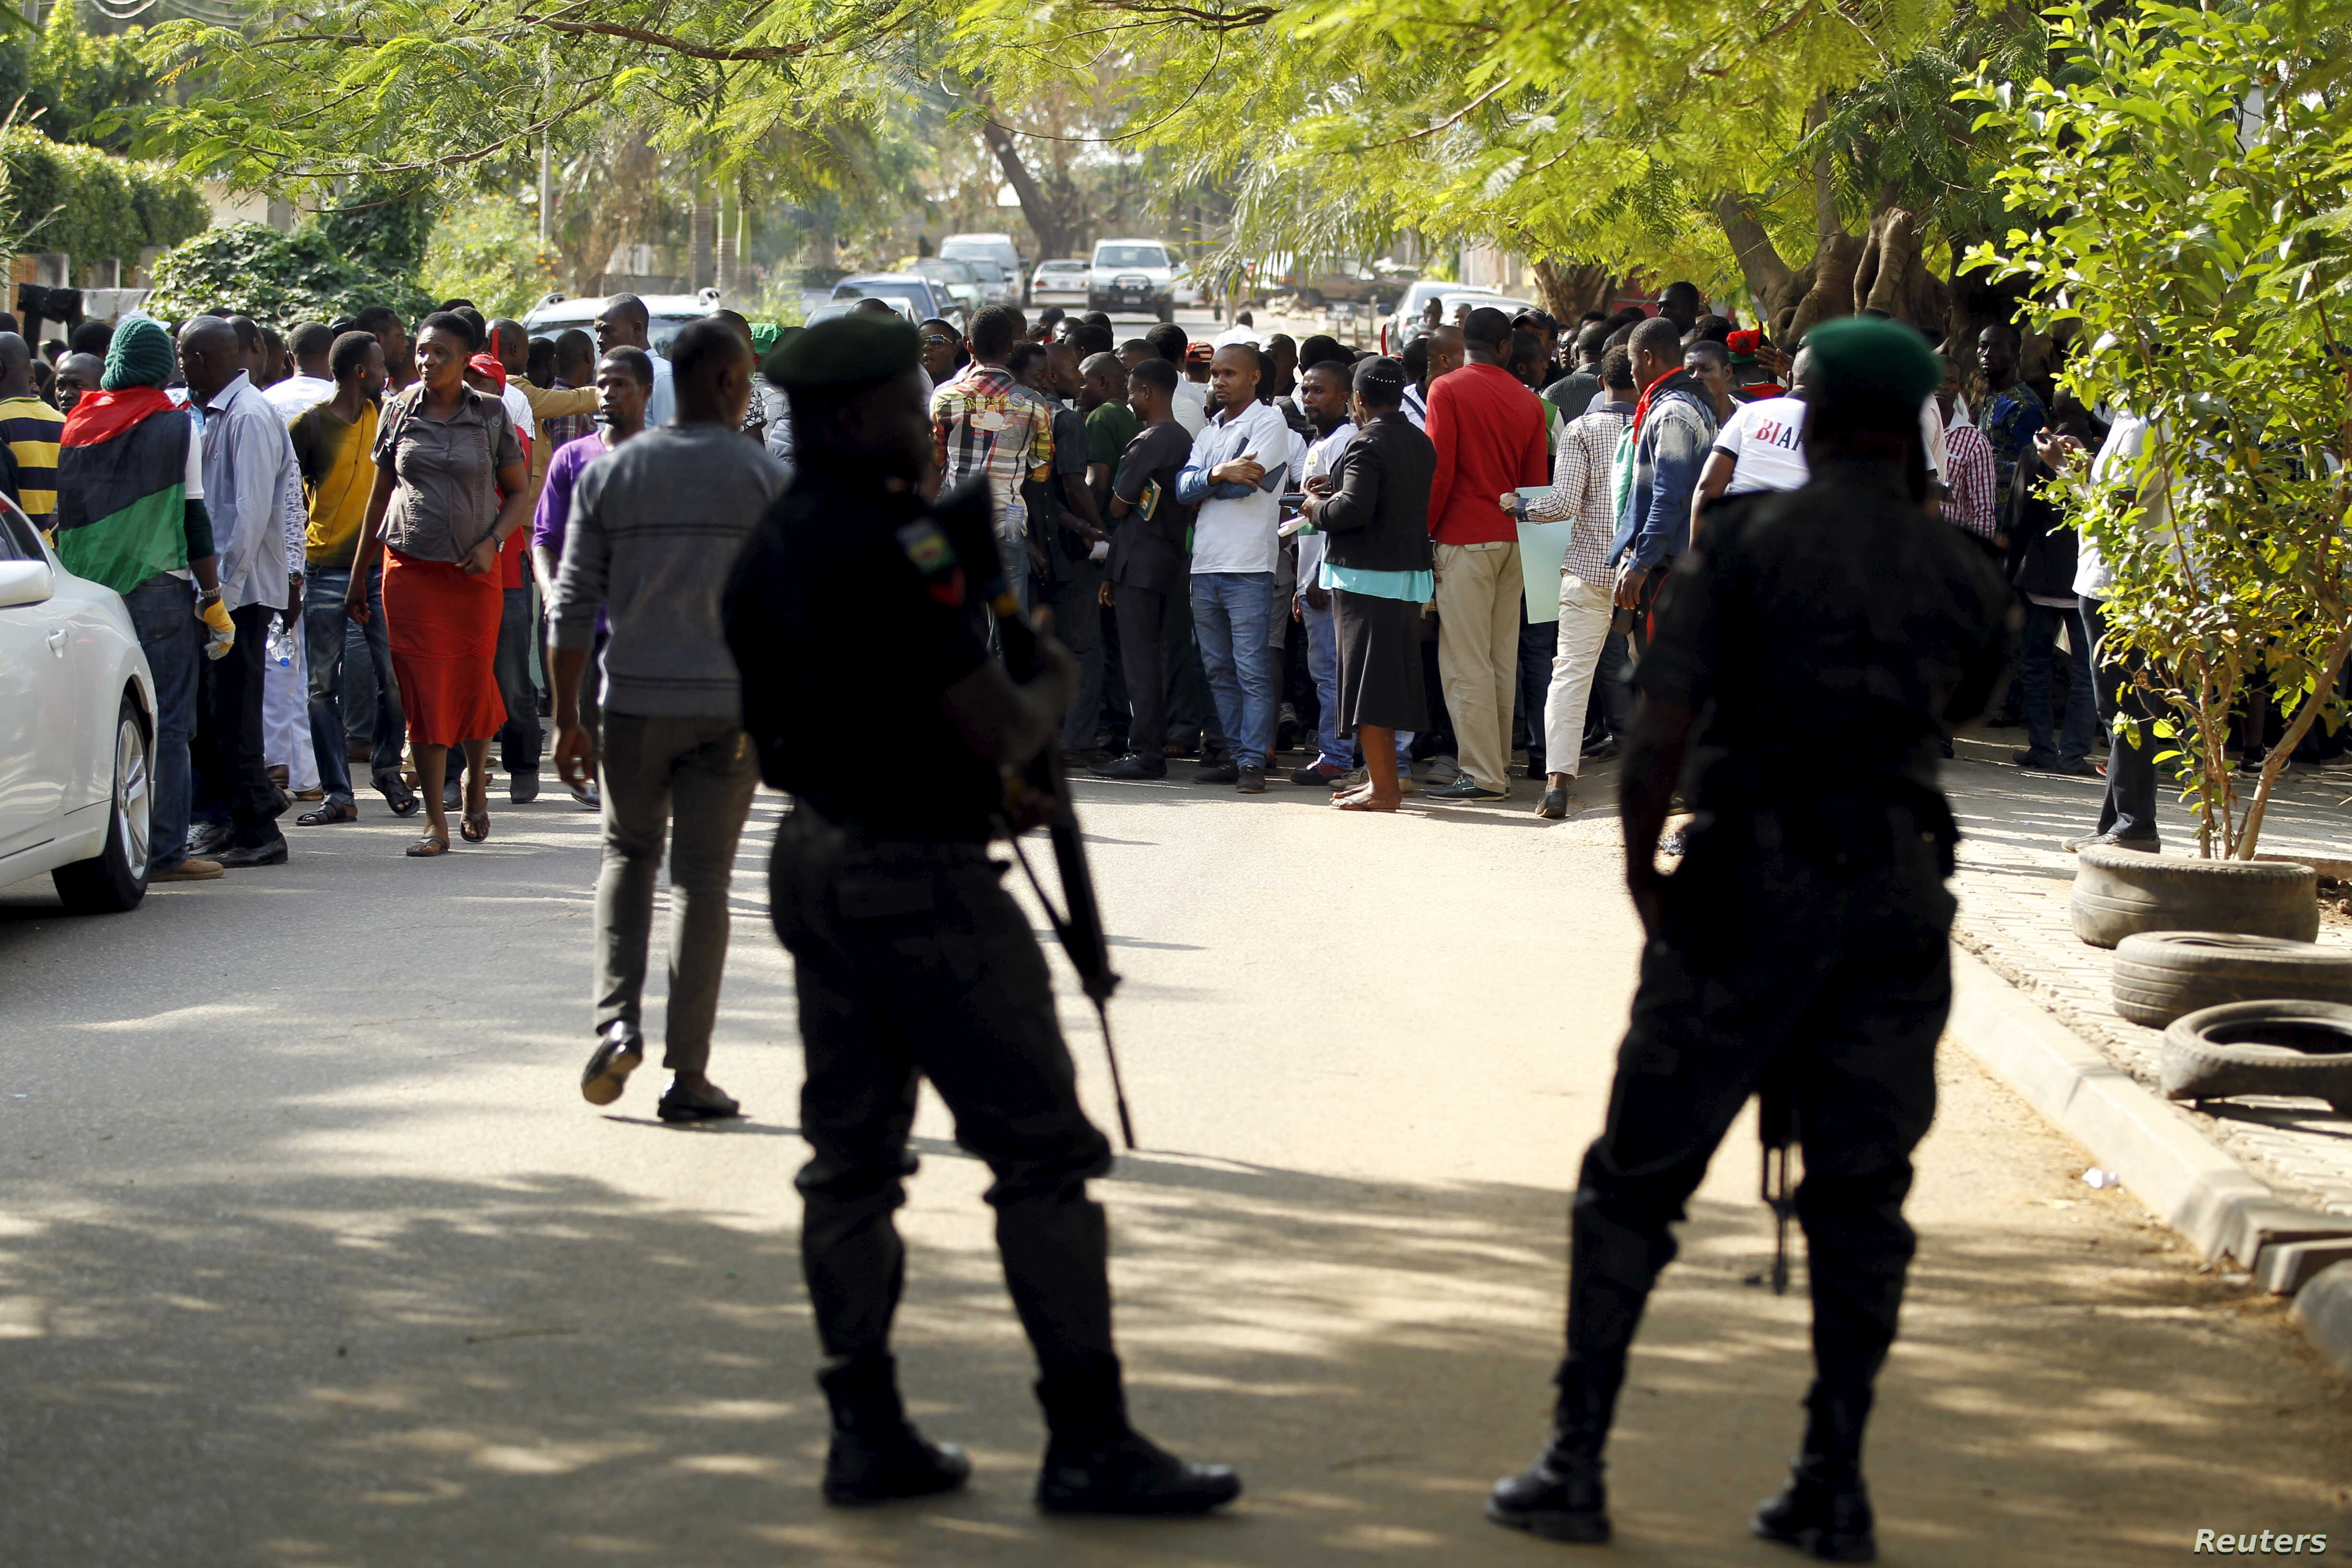 Amnesty: Military Killed 150 Pro-Biafra Separatists in